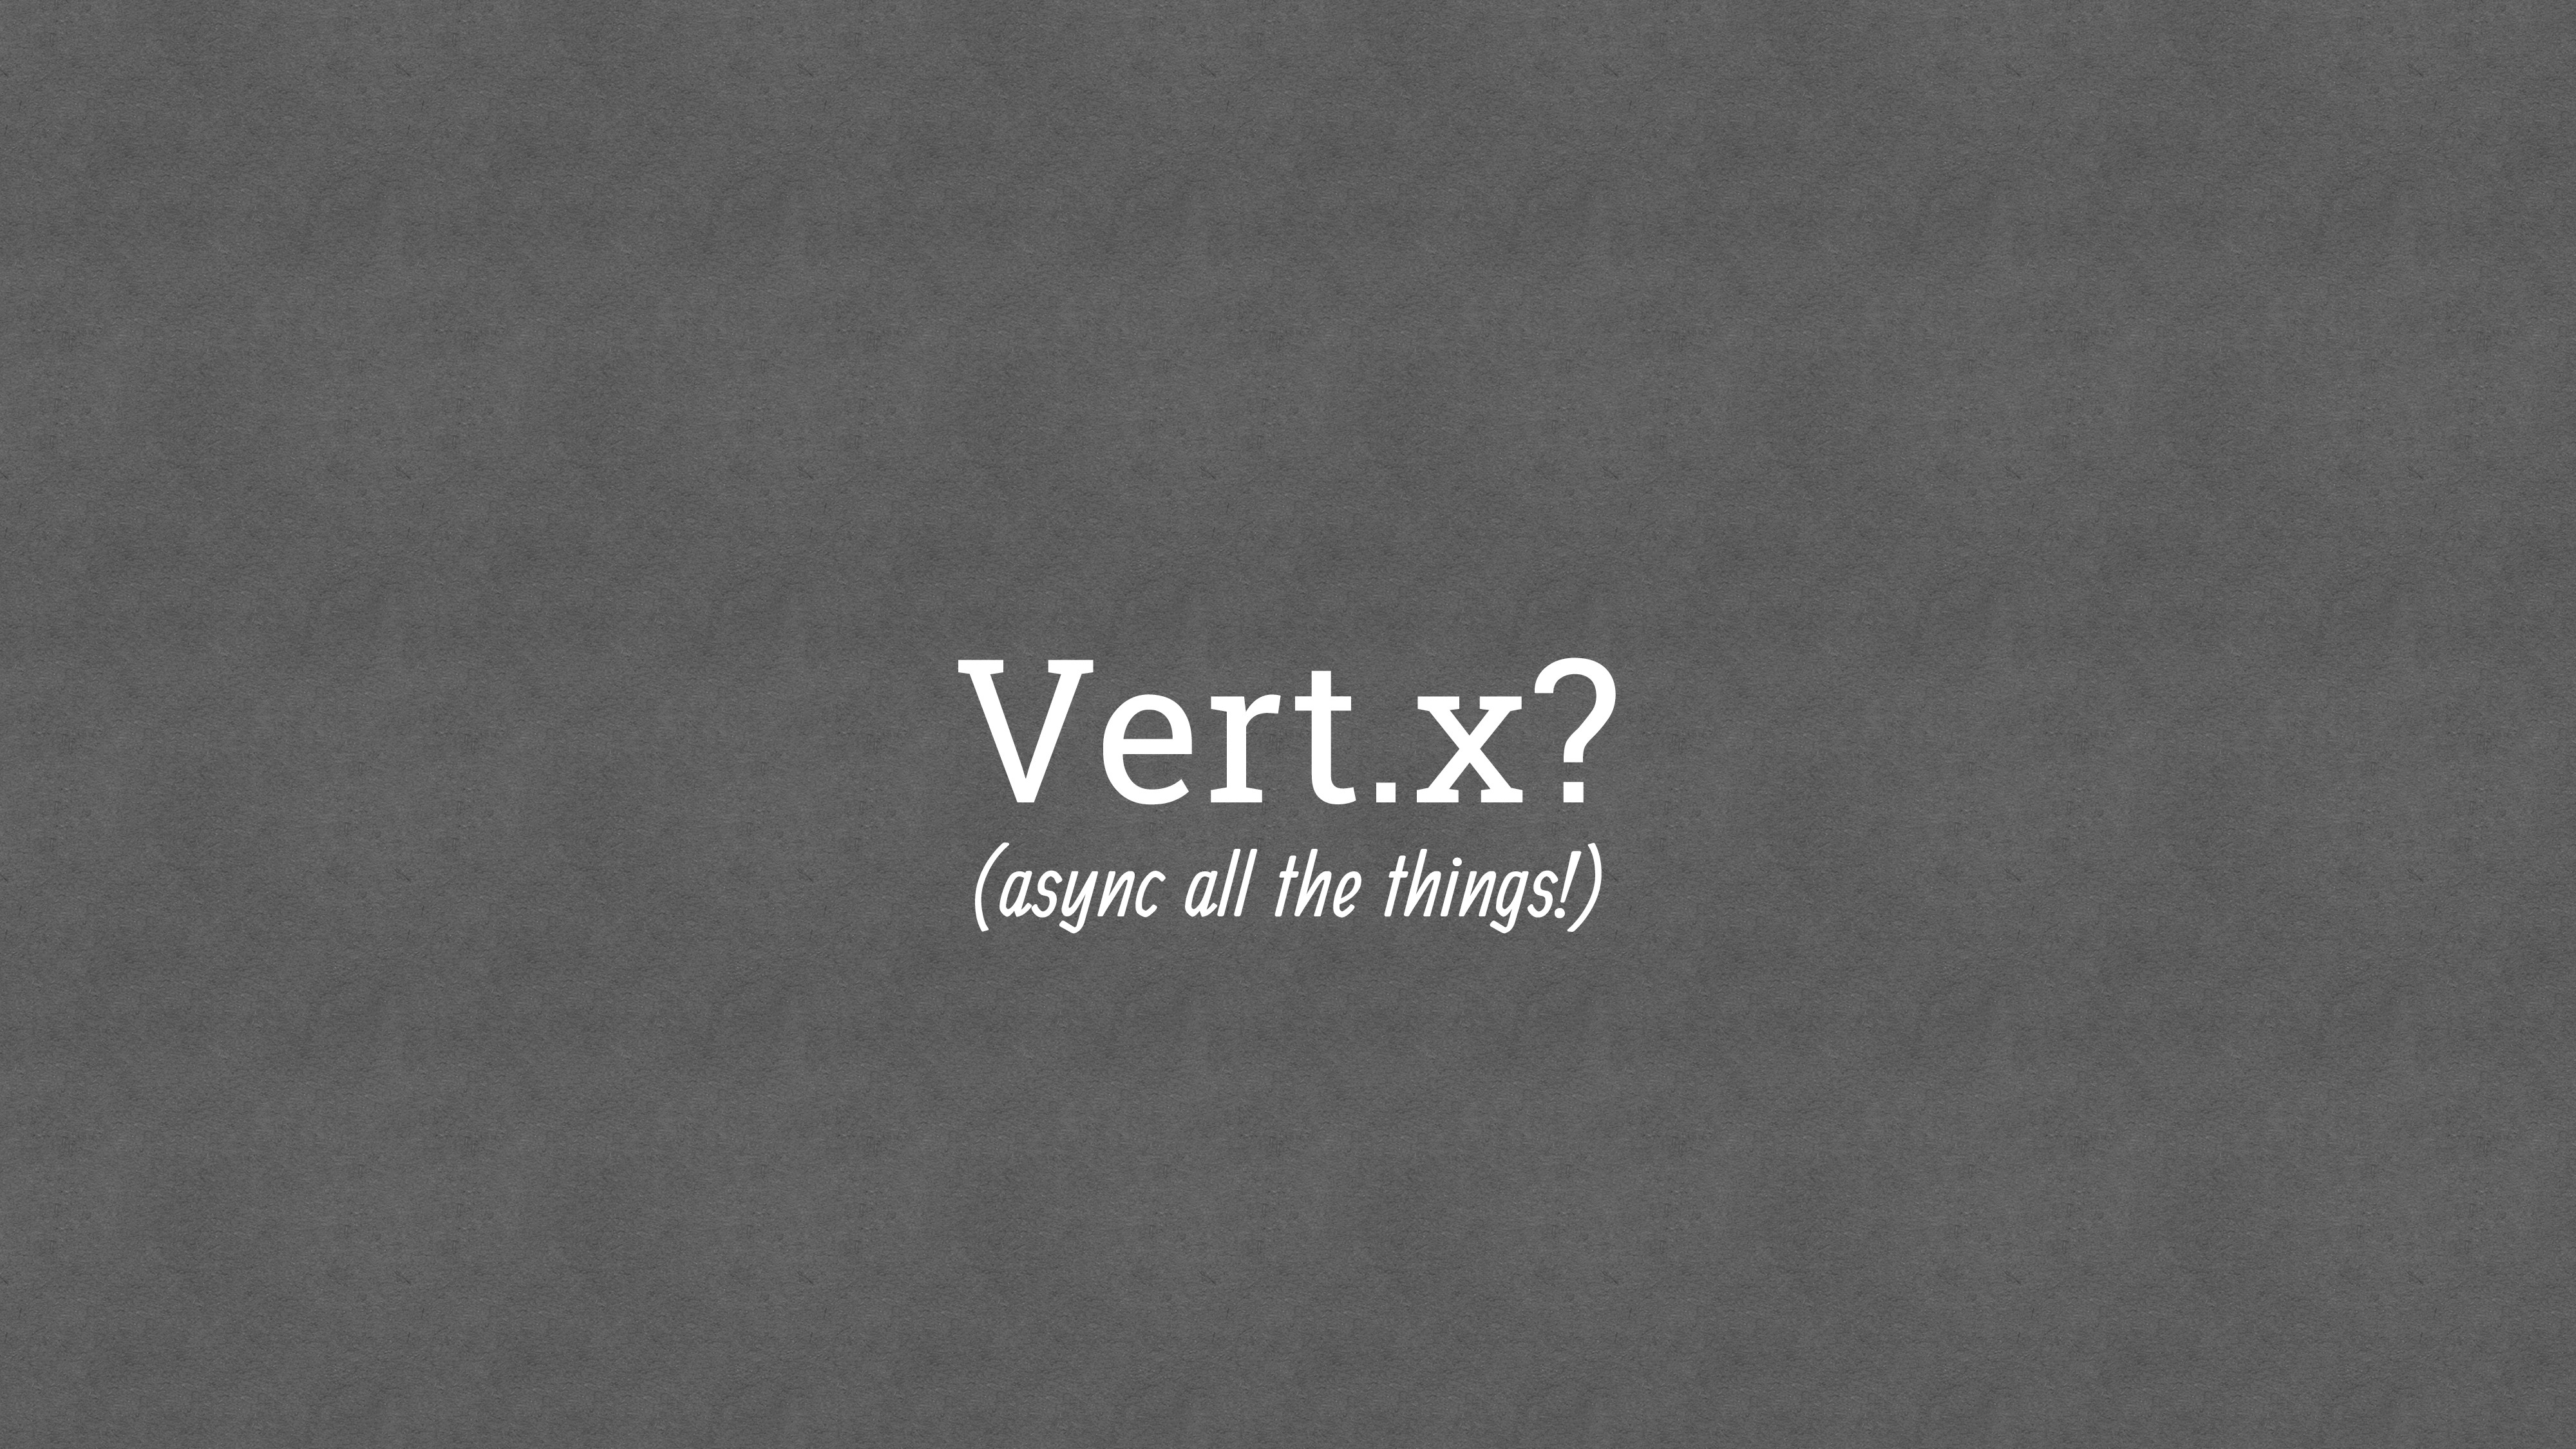 Vert.x? (async all the things!)